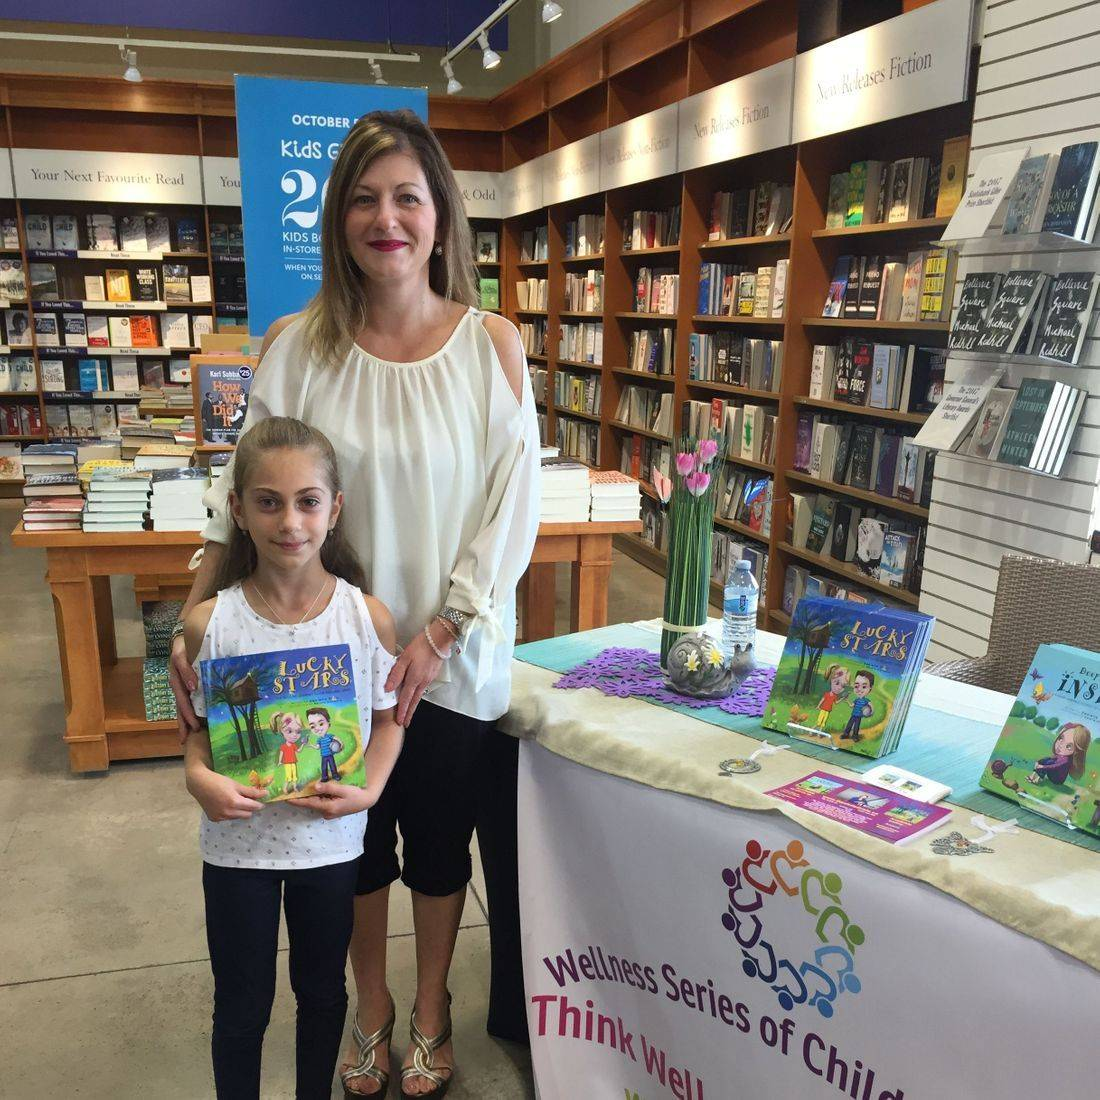 Indigo Burlington October 2017 Book Signing Event for Deep Down Inside and Lucky Stars with Author Daniella Grsic